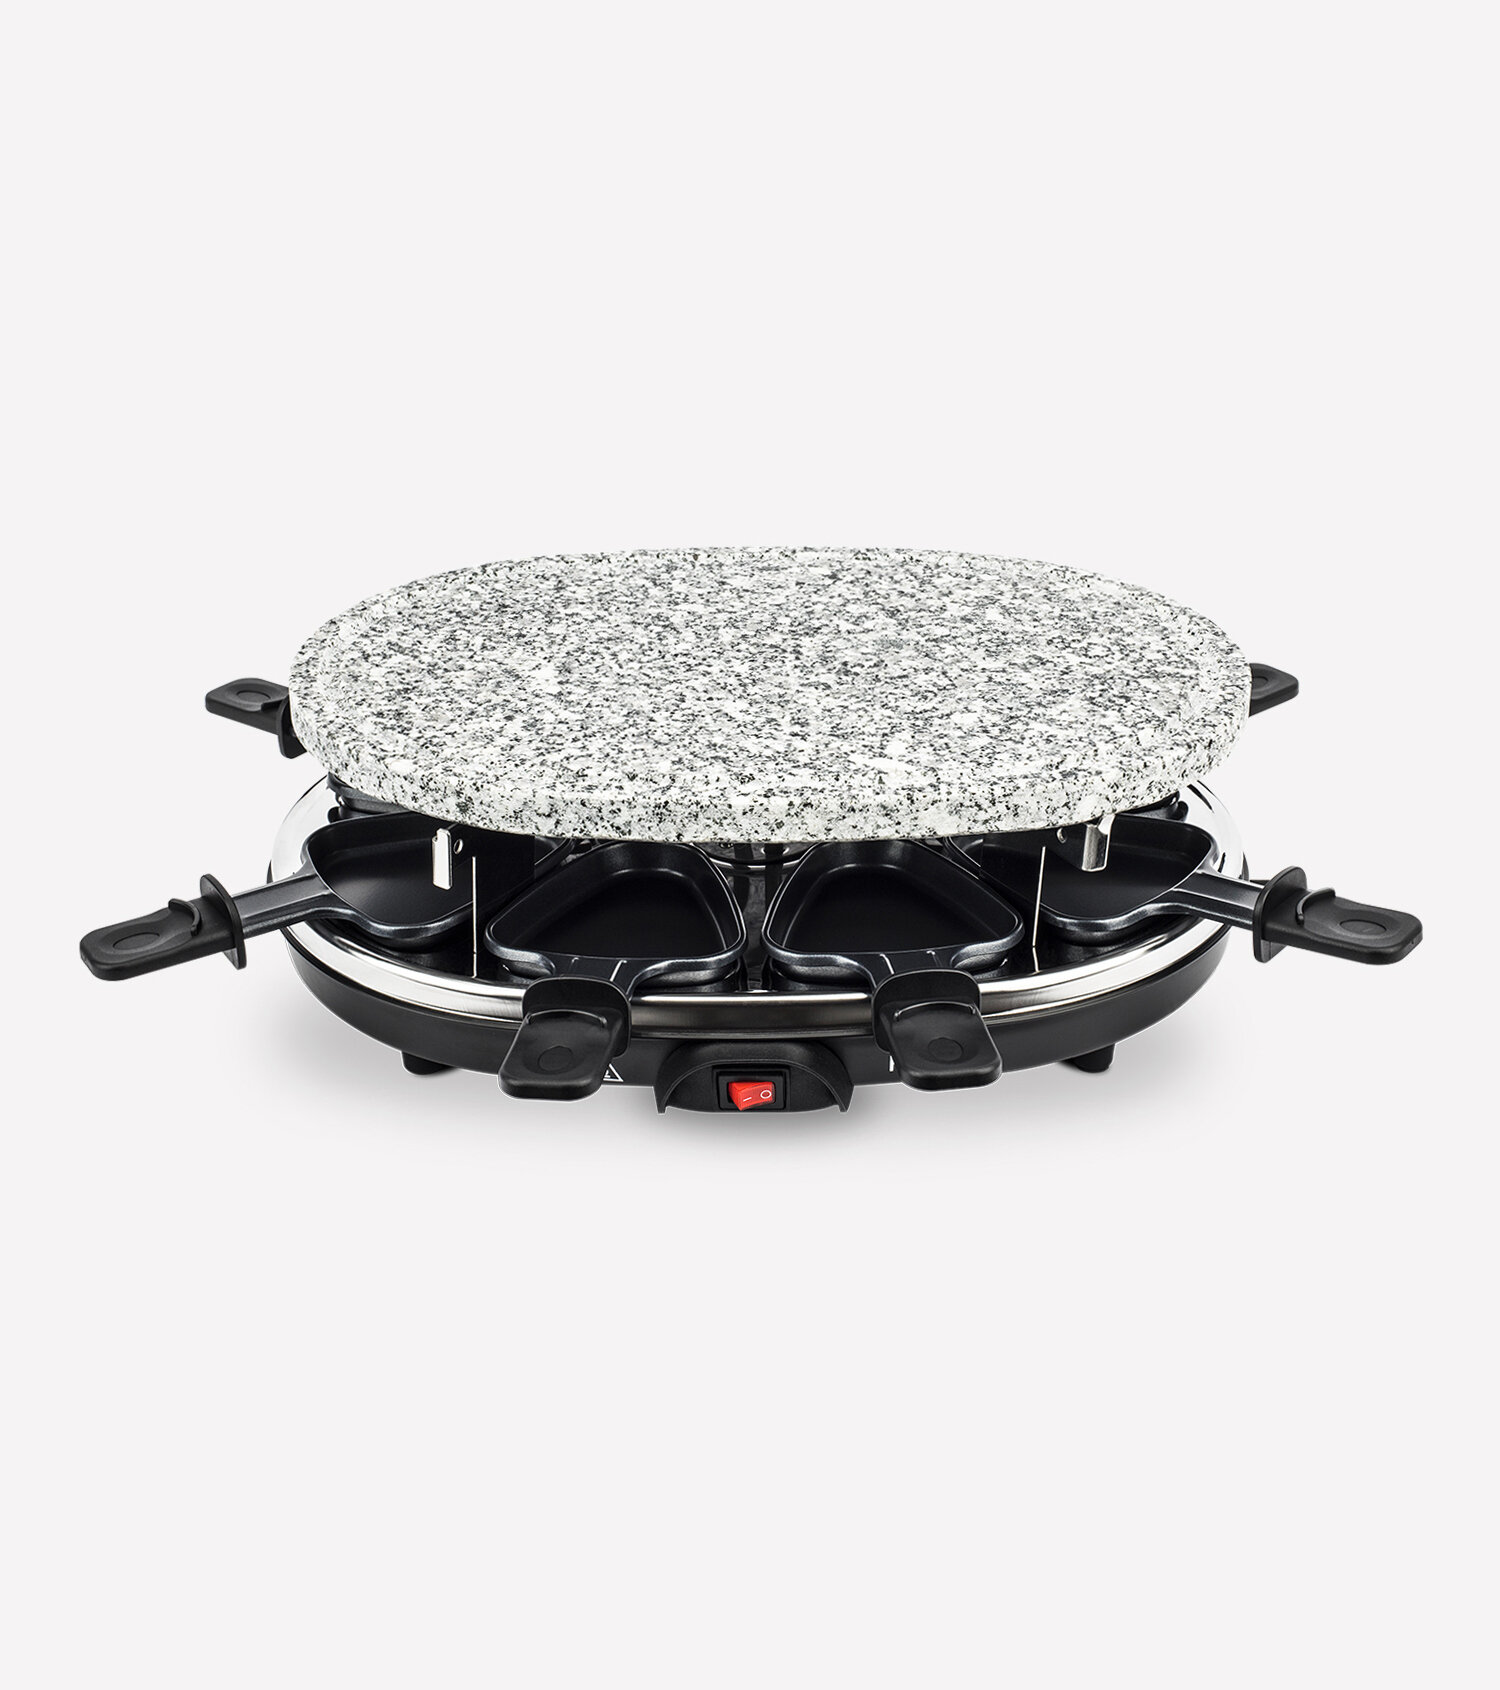 raclette grill 8 persons with granite stone